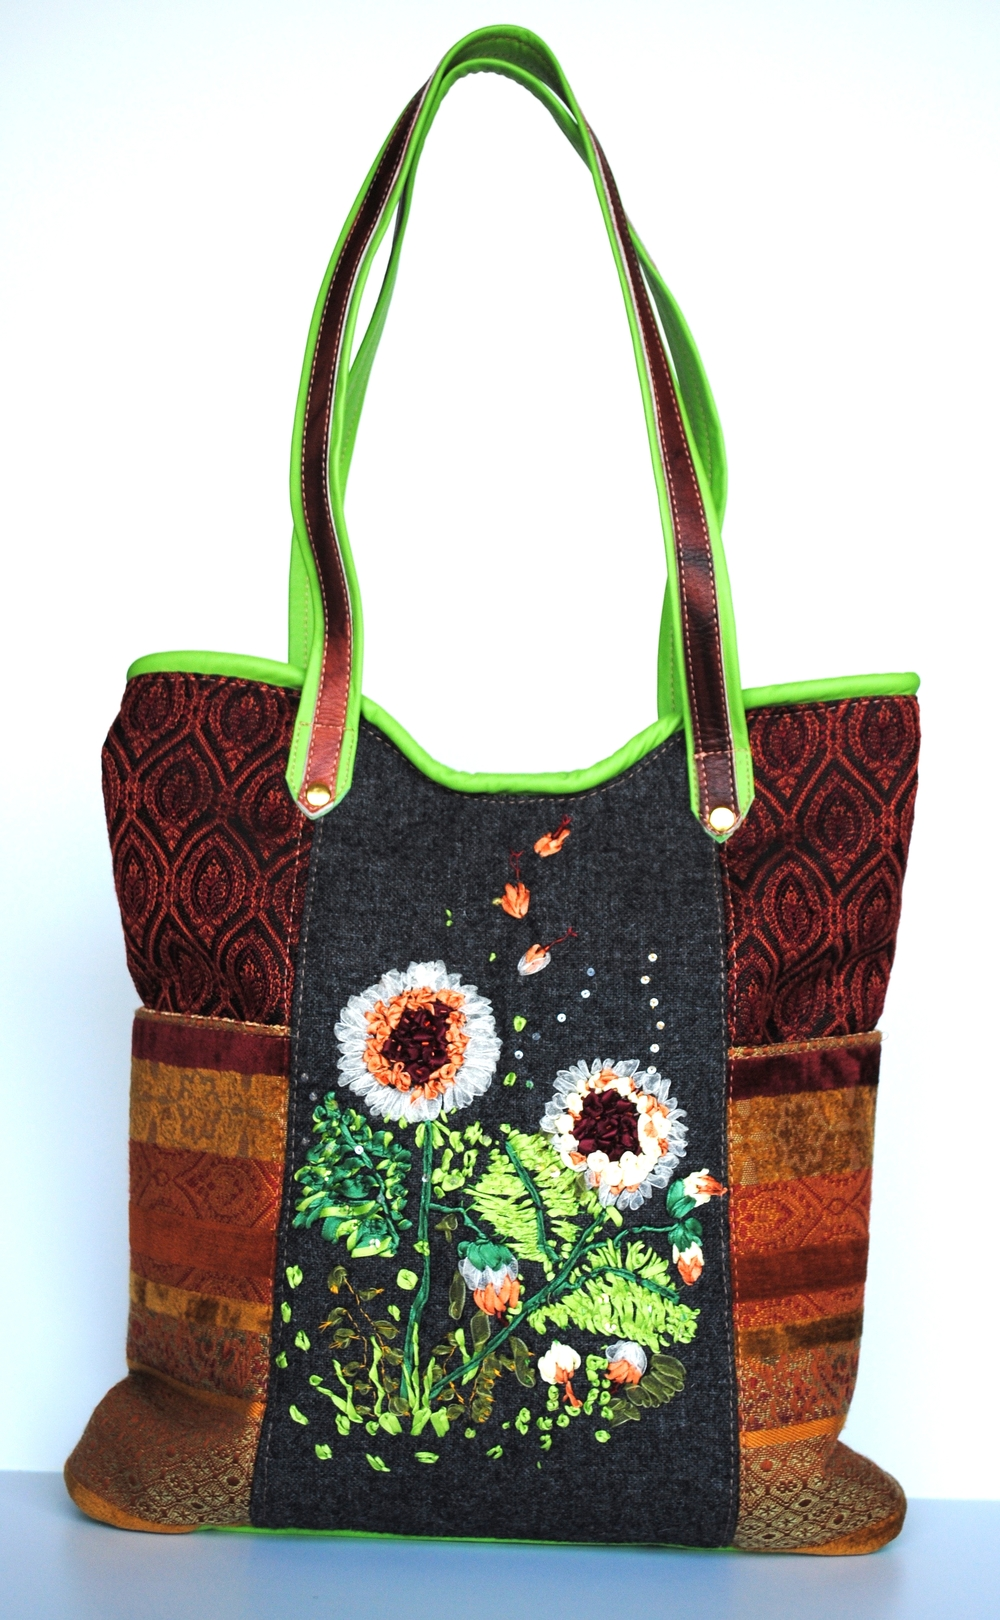 Babylon Garden Tote With Ribbon Embroidery and Leather